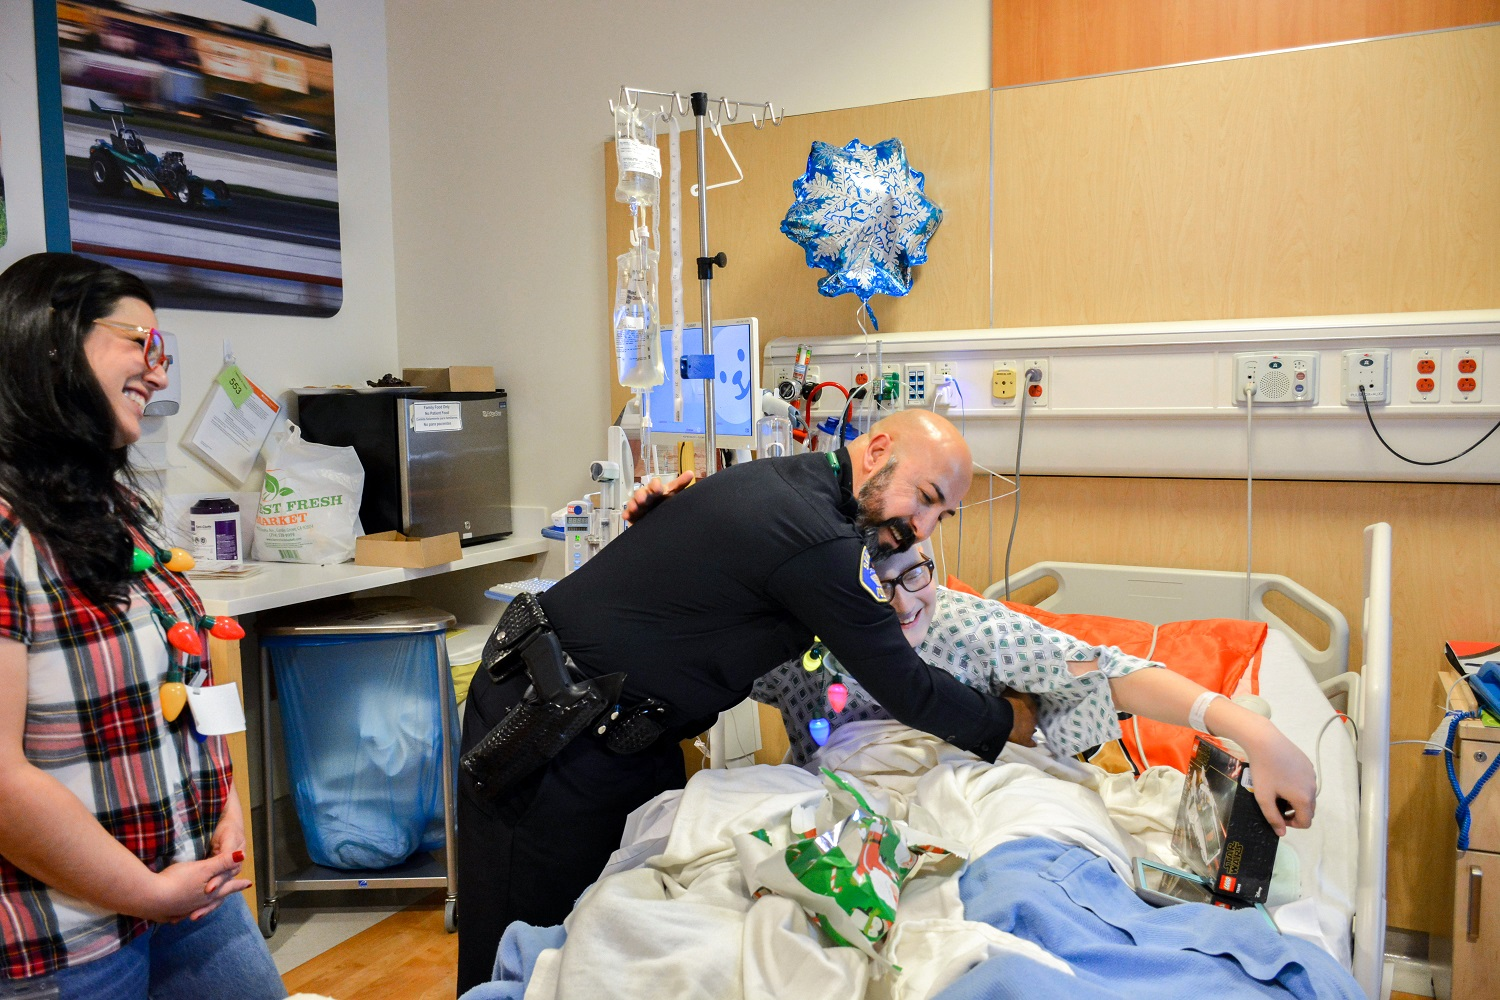 A police officer hugging a child in a hospital bed, both are smiling